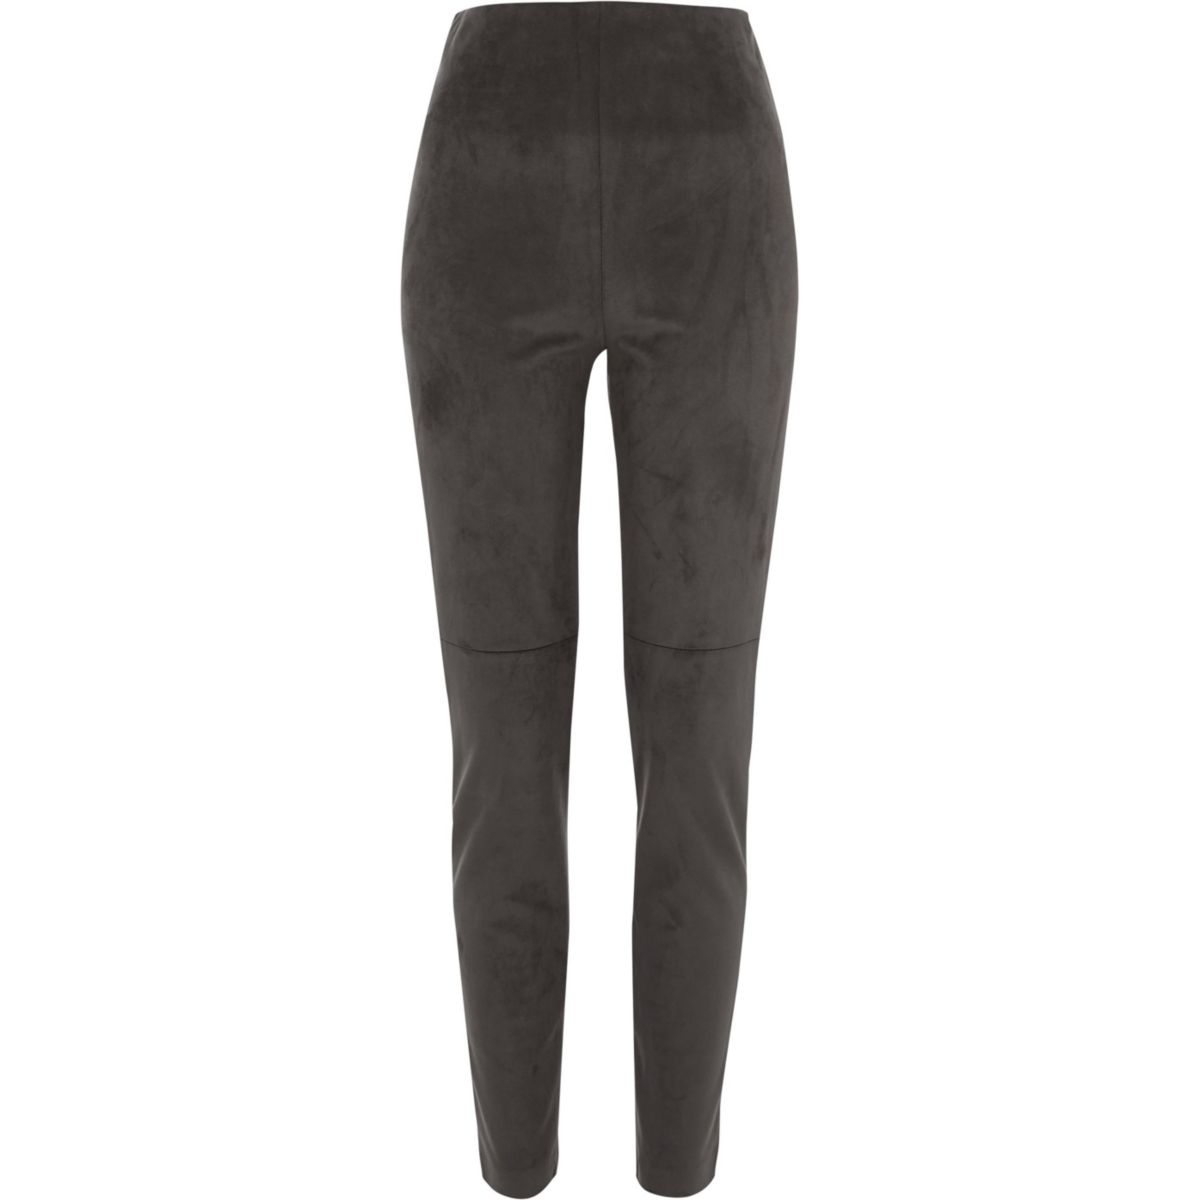 Dark grey faux suede skinny trousers